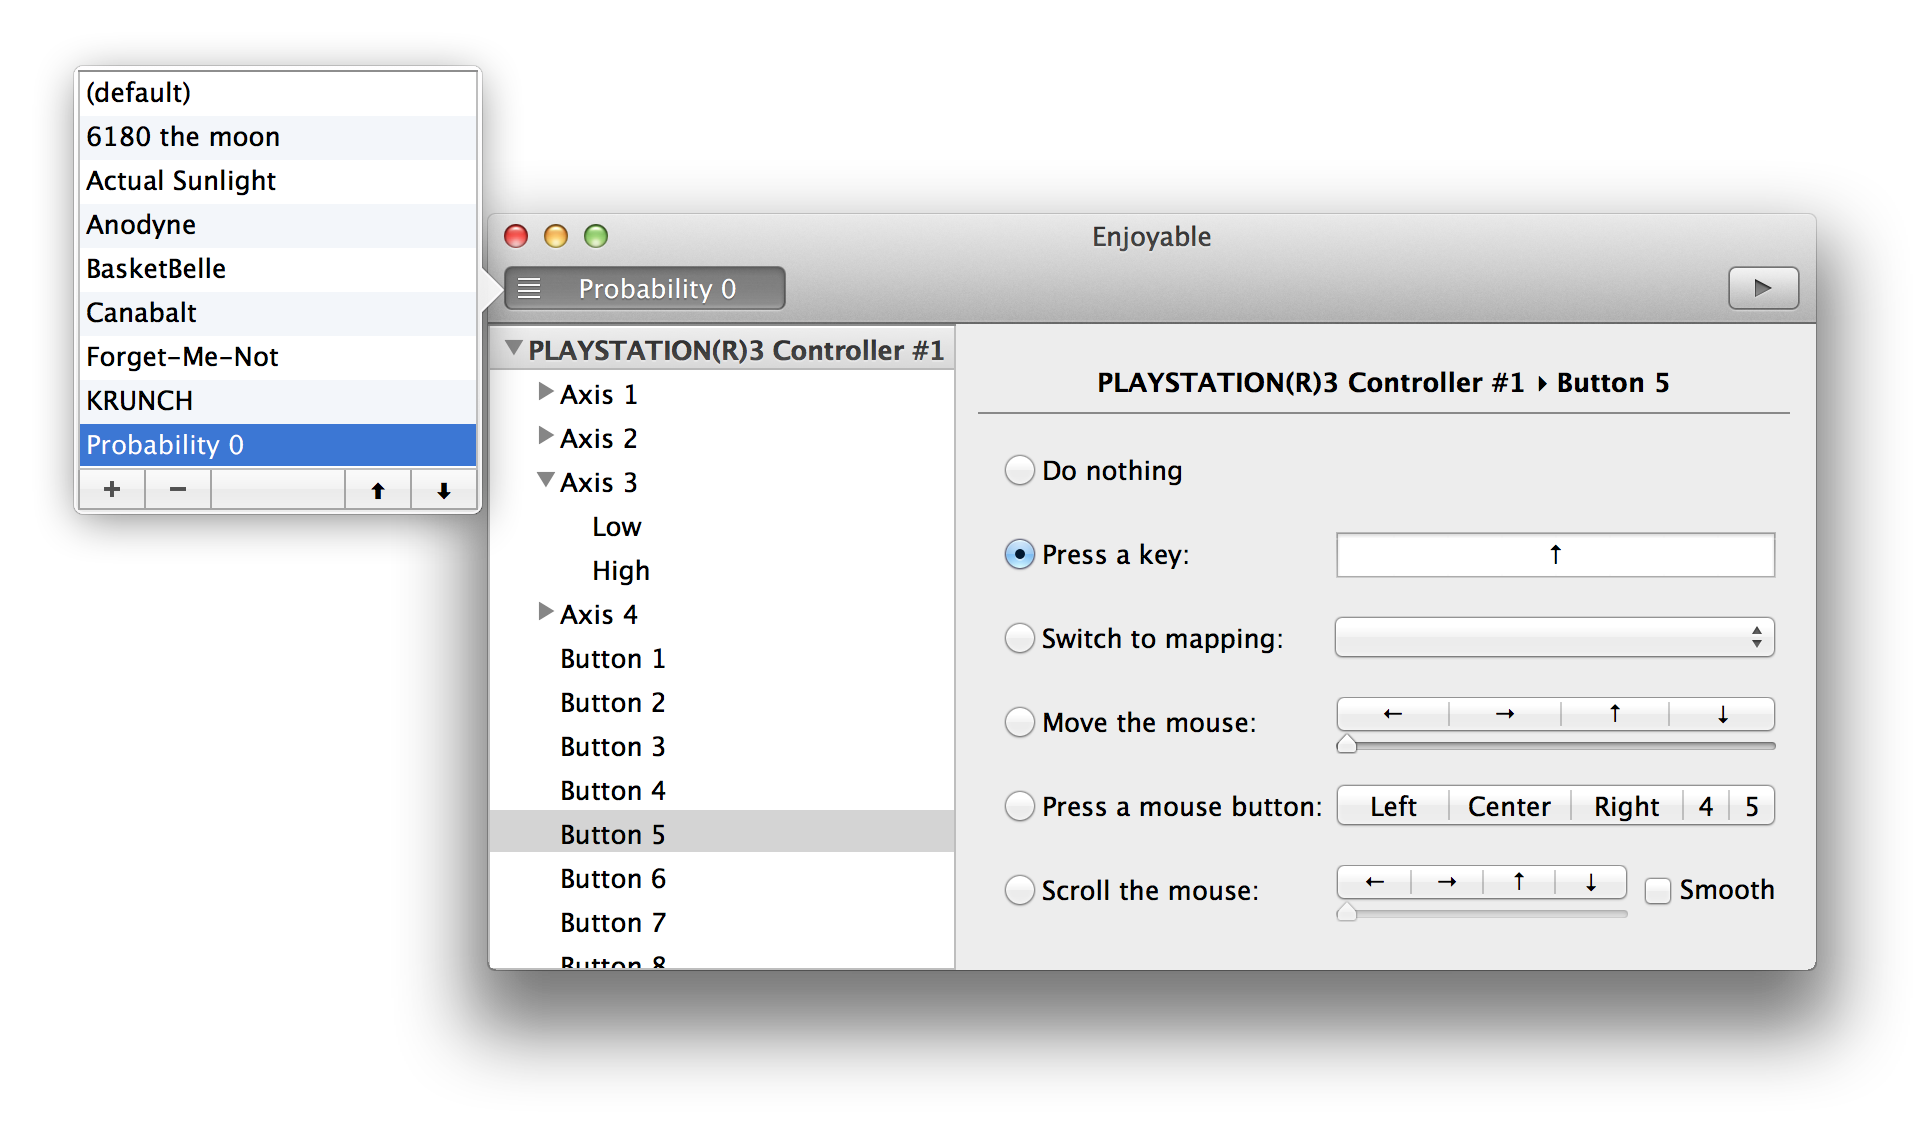 Enjoyable - Joystick and gamepad mapping for Mac OS X